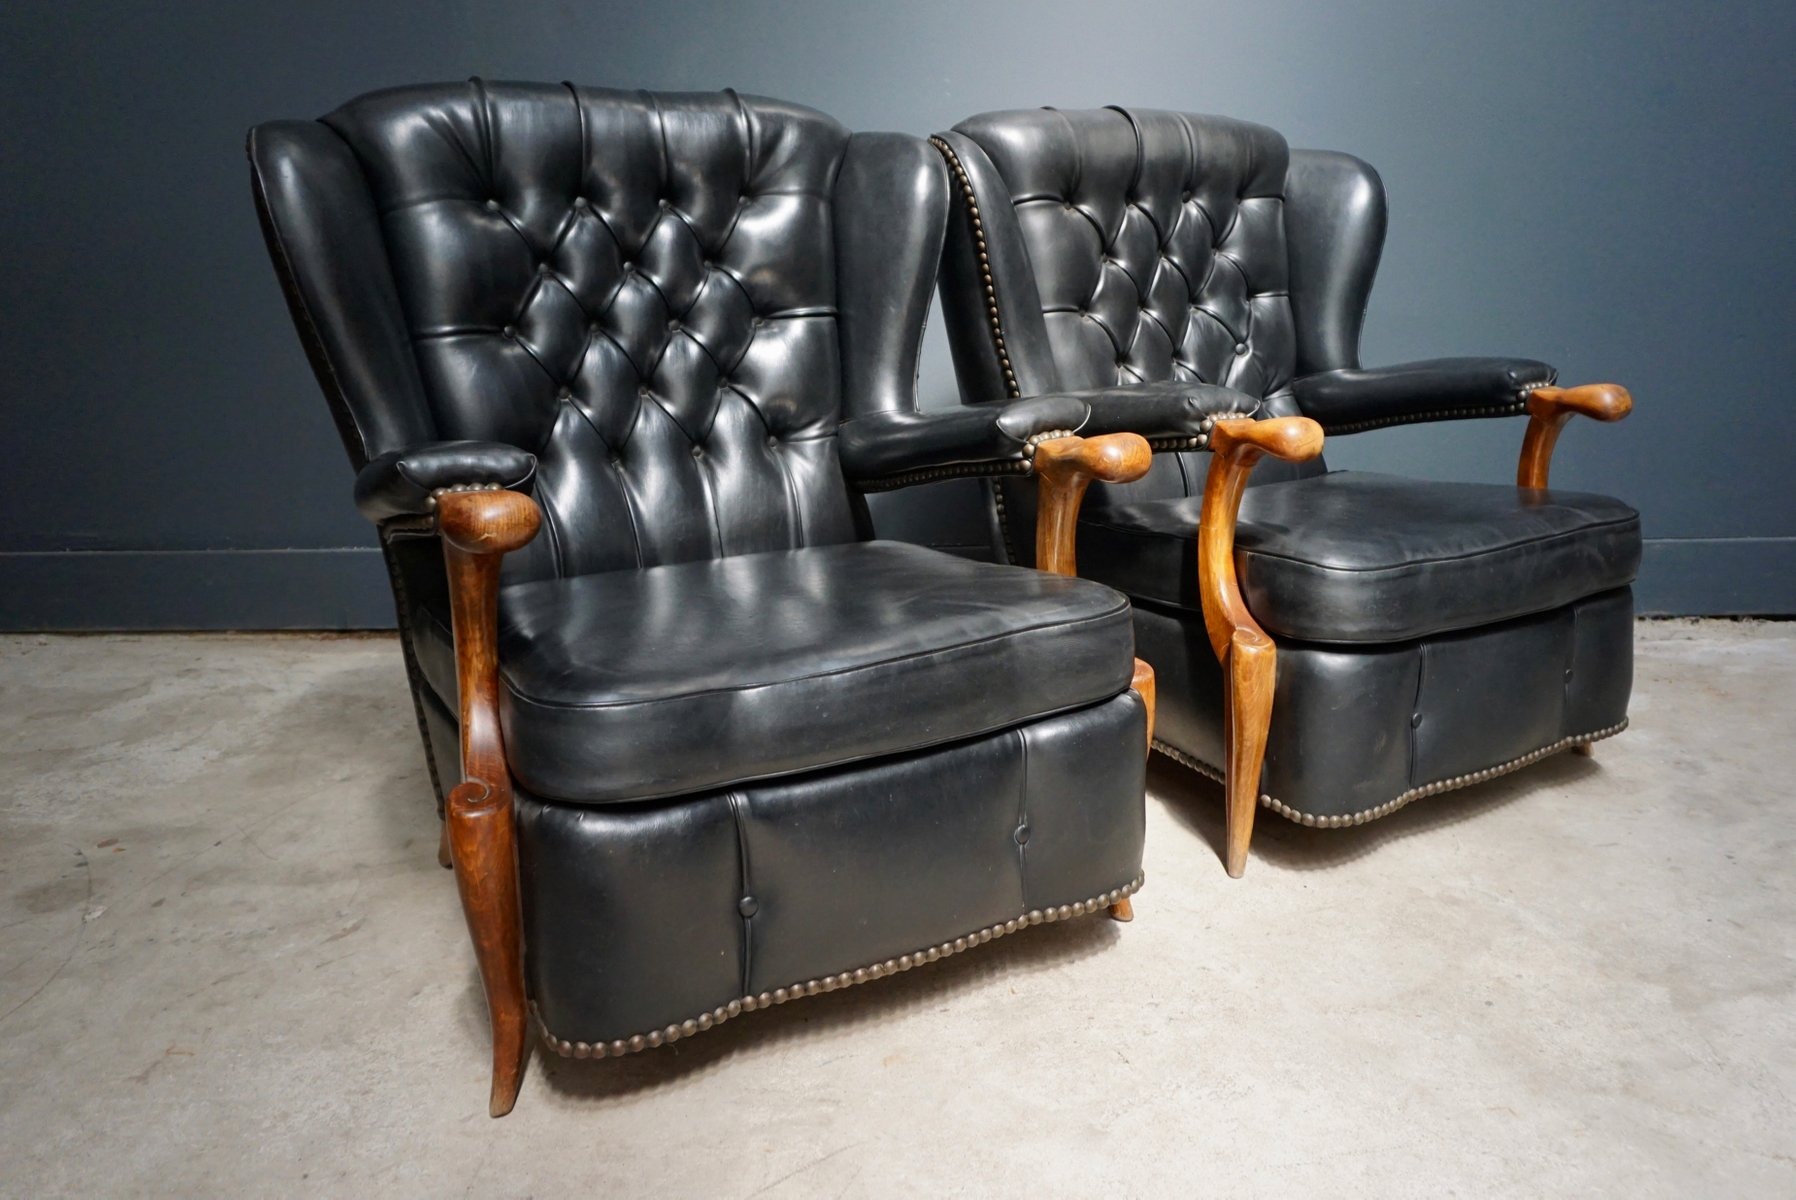 fauteuils chesterfield en cuir noir france 1940s set de 2 en vente sur pamono. Black Bedroom Furniture Sets. Home Design Ideas